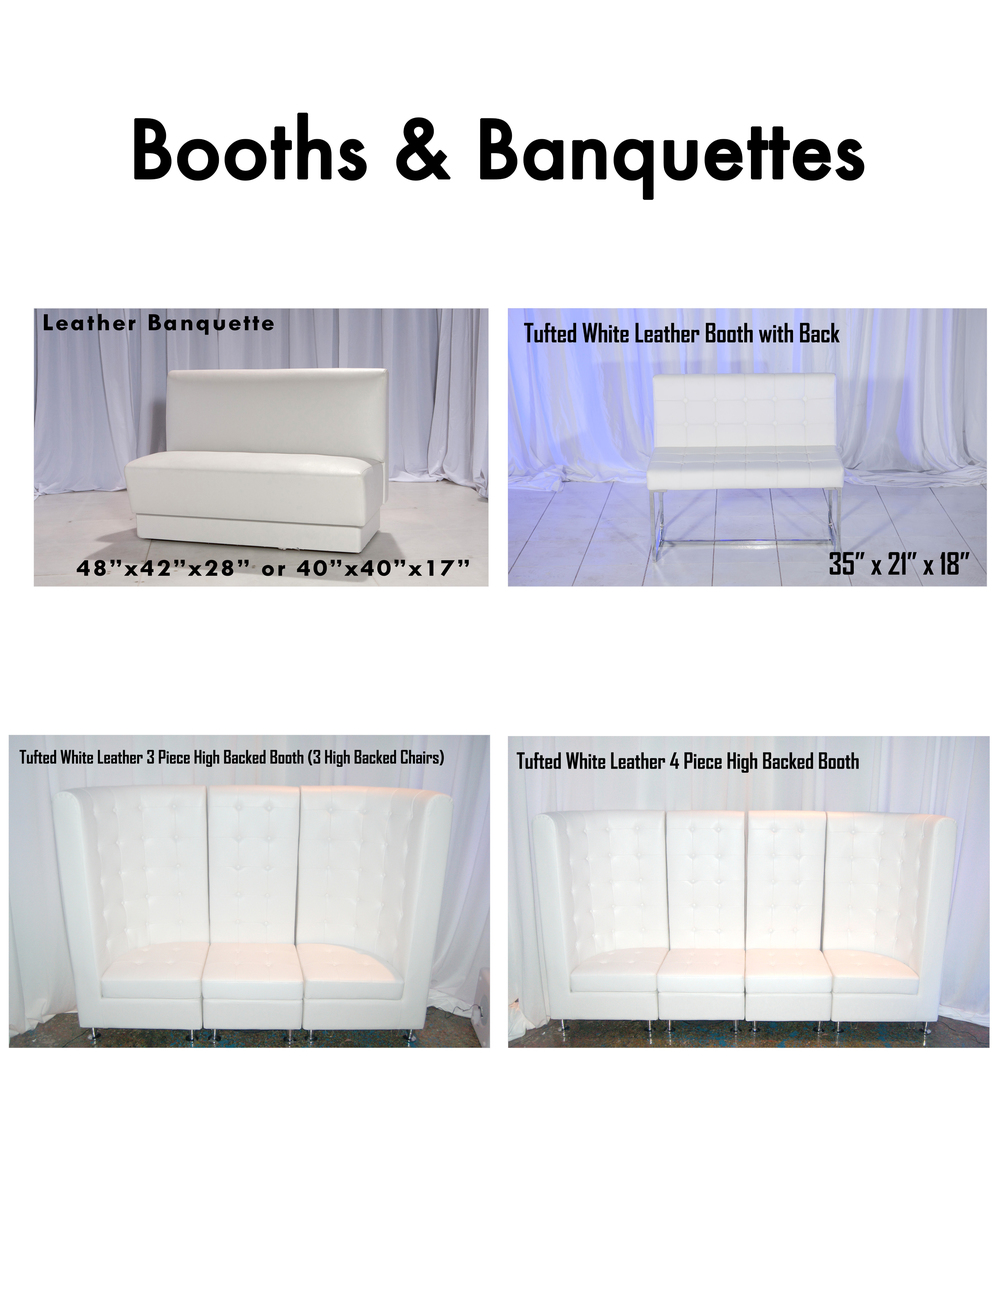 P38_Booths & Banquettes.jpg